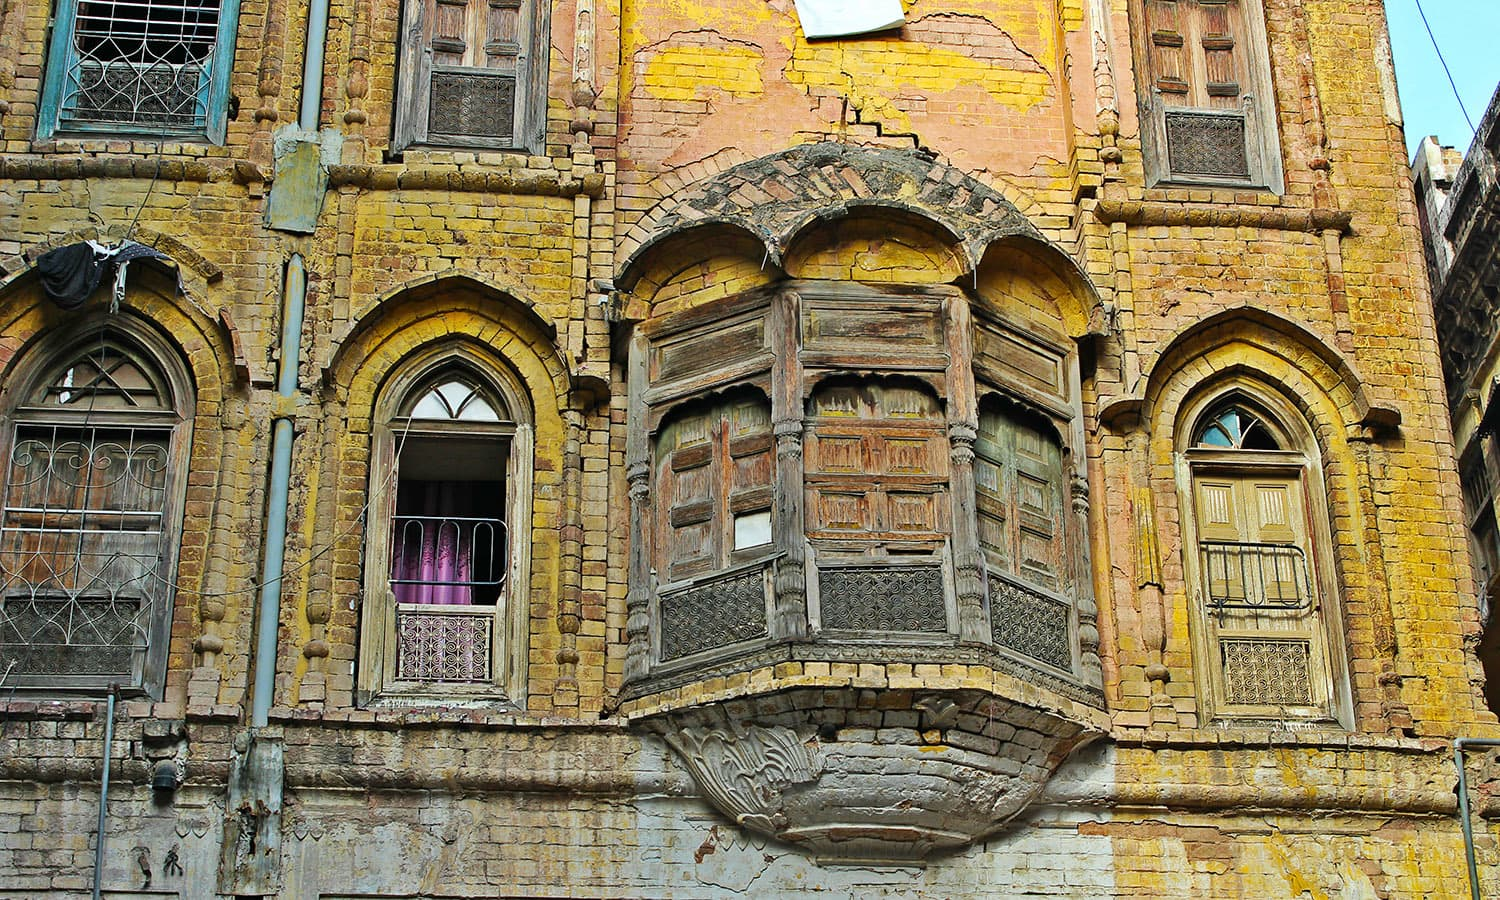 An intricately carved *jharoka* of the old houses where traders and goldsmiths used to live.